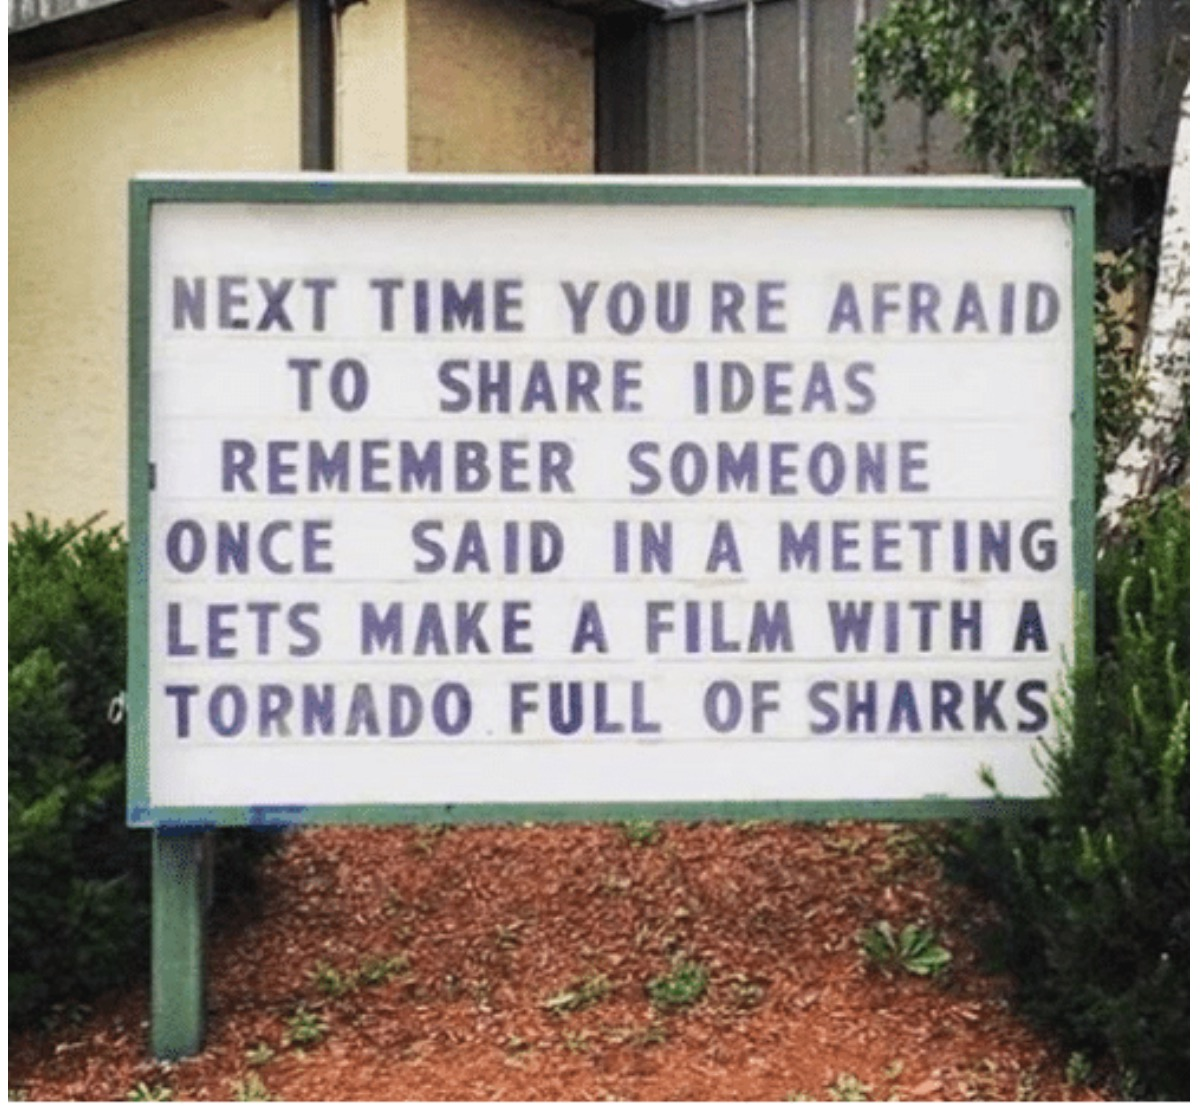 """""""Next time you're afraid to share ideas, remember someone once said in a meeting, let's make a film with a tornado full of sharks."""" -viral meme found on Reddit, original source unknown"""